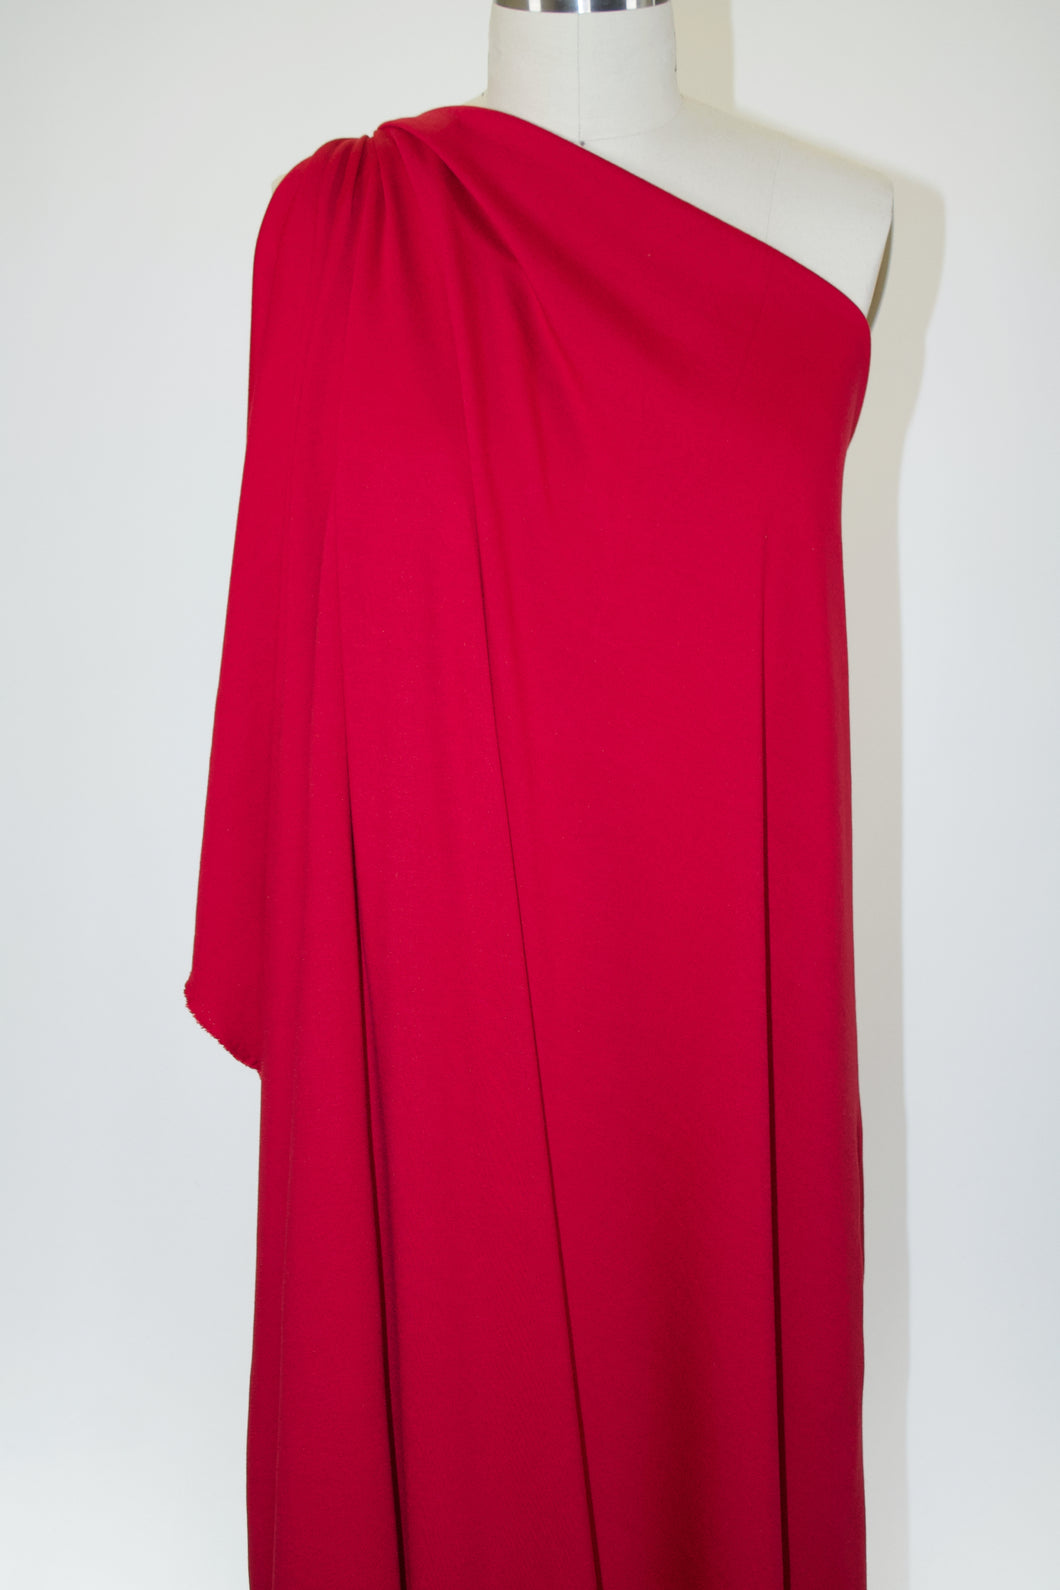 Designer Rayon Double Knit - Lipstick Red